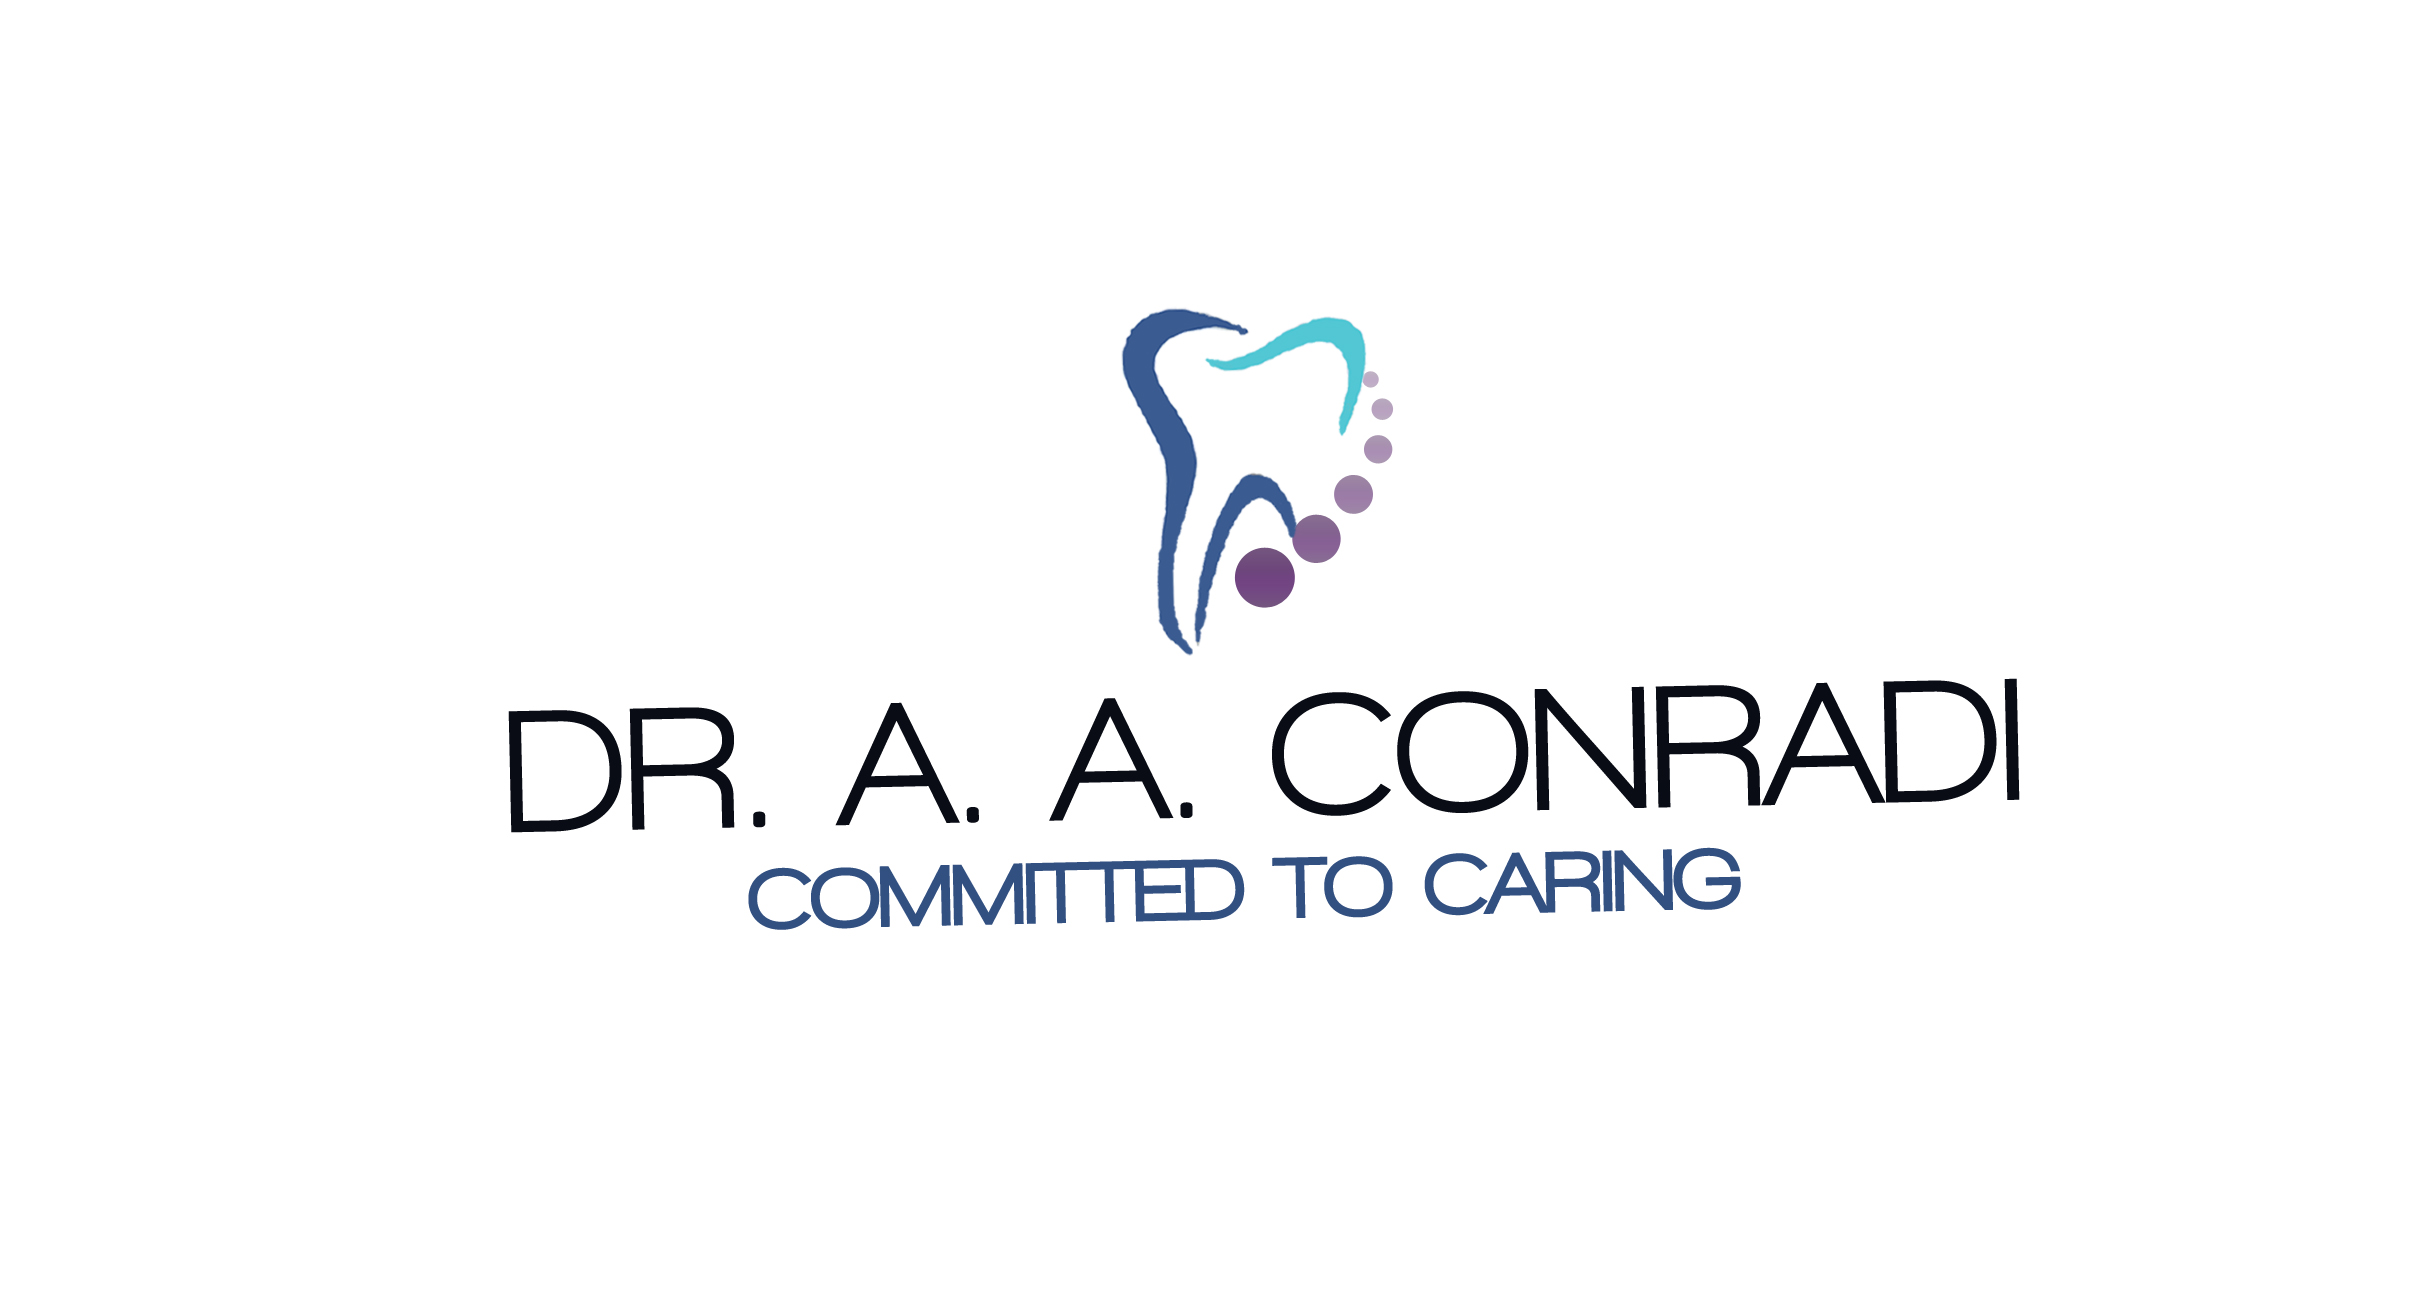 Logo Design by Lama Creative - Entry No. 24 in the Logo Design Contest Unique Logo Design Wanted for Dr. A.A. Conradi.